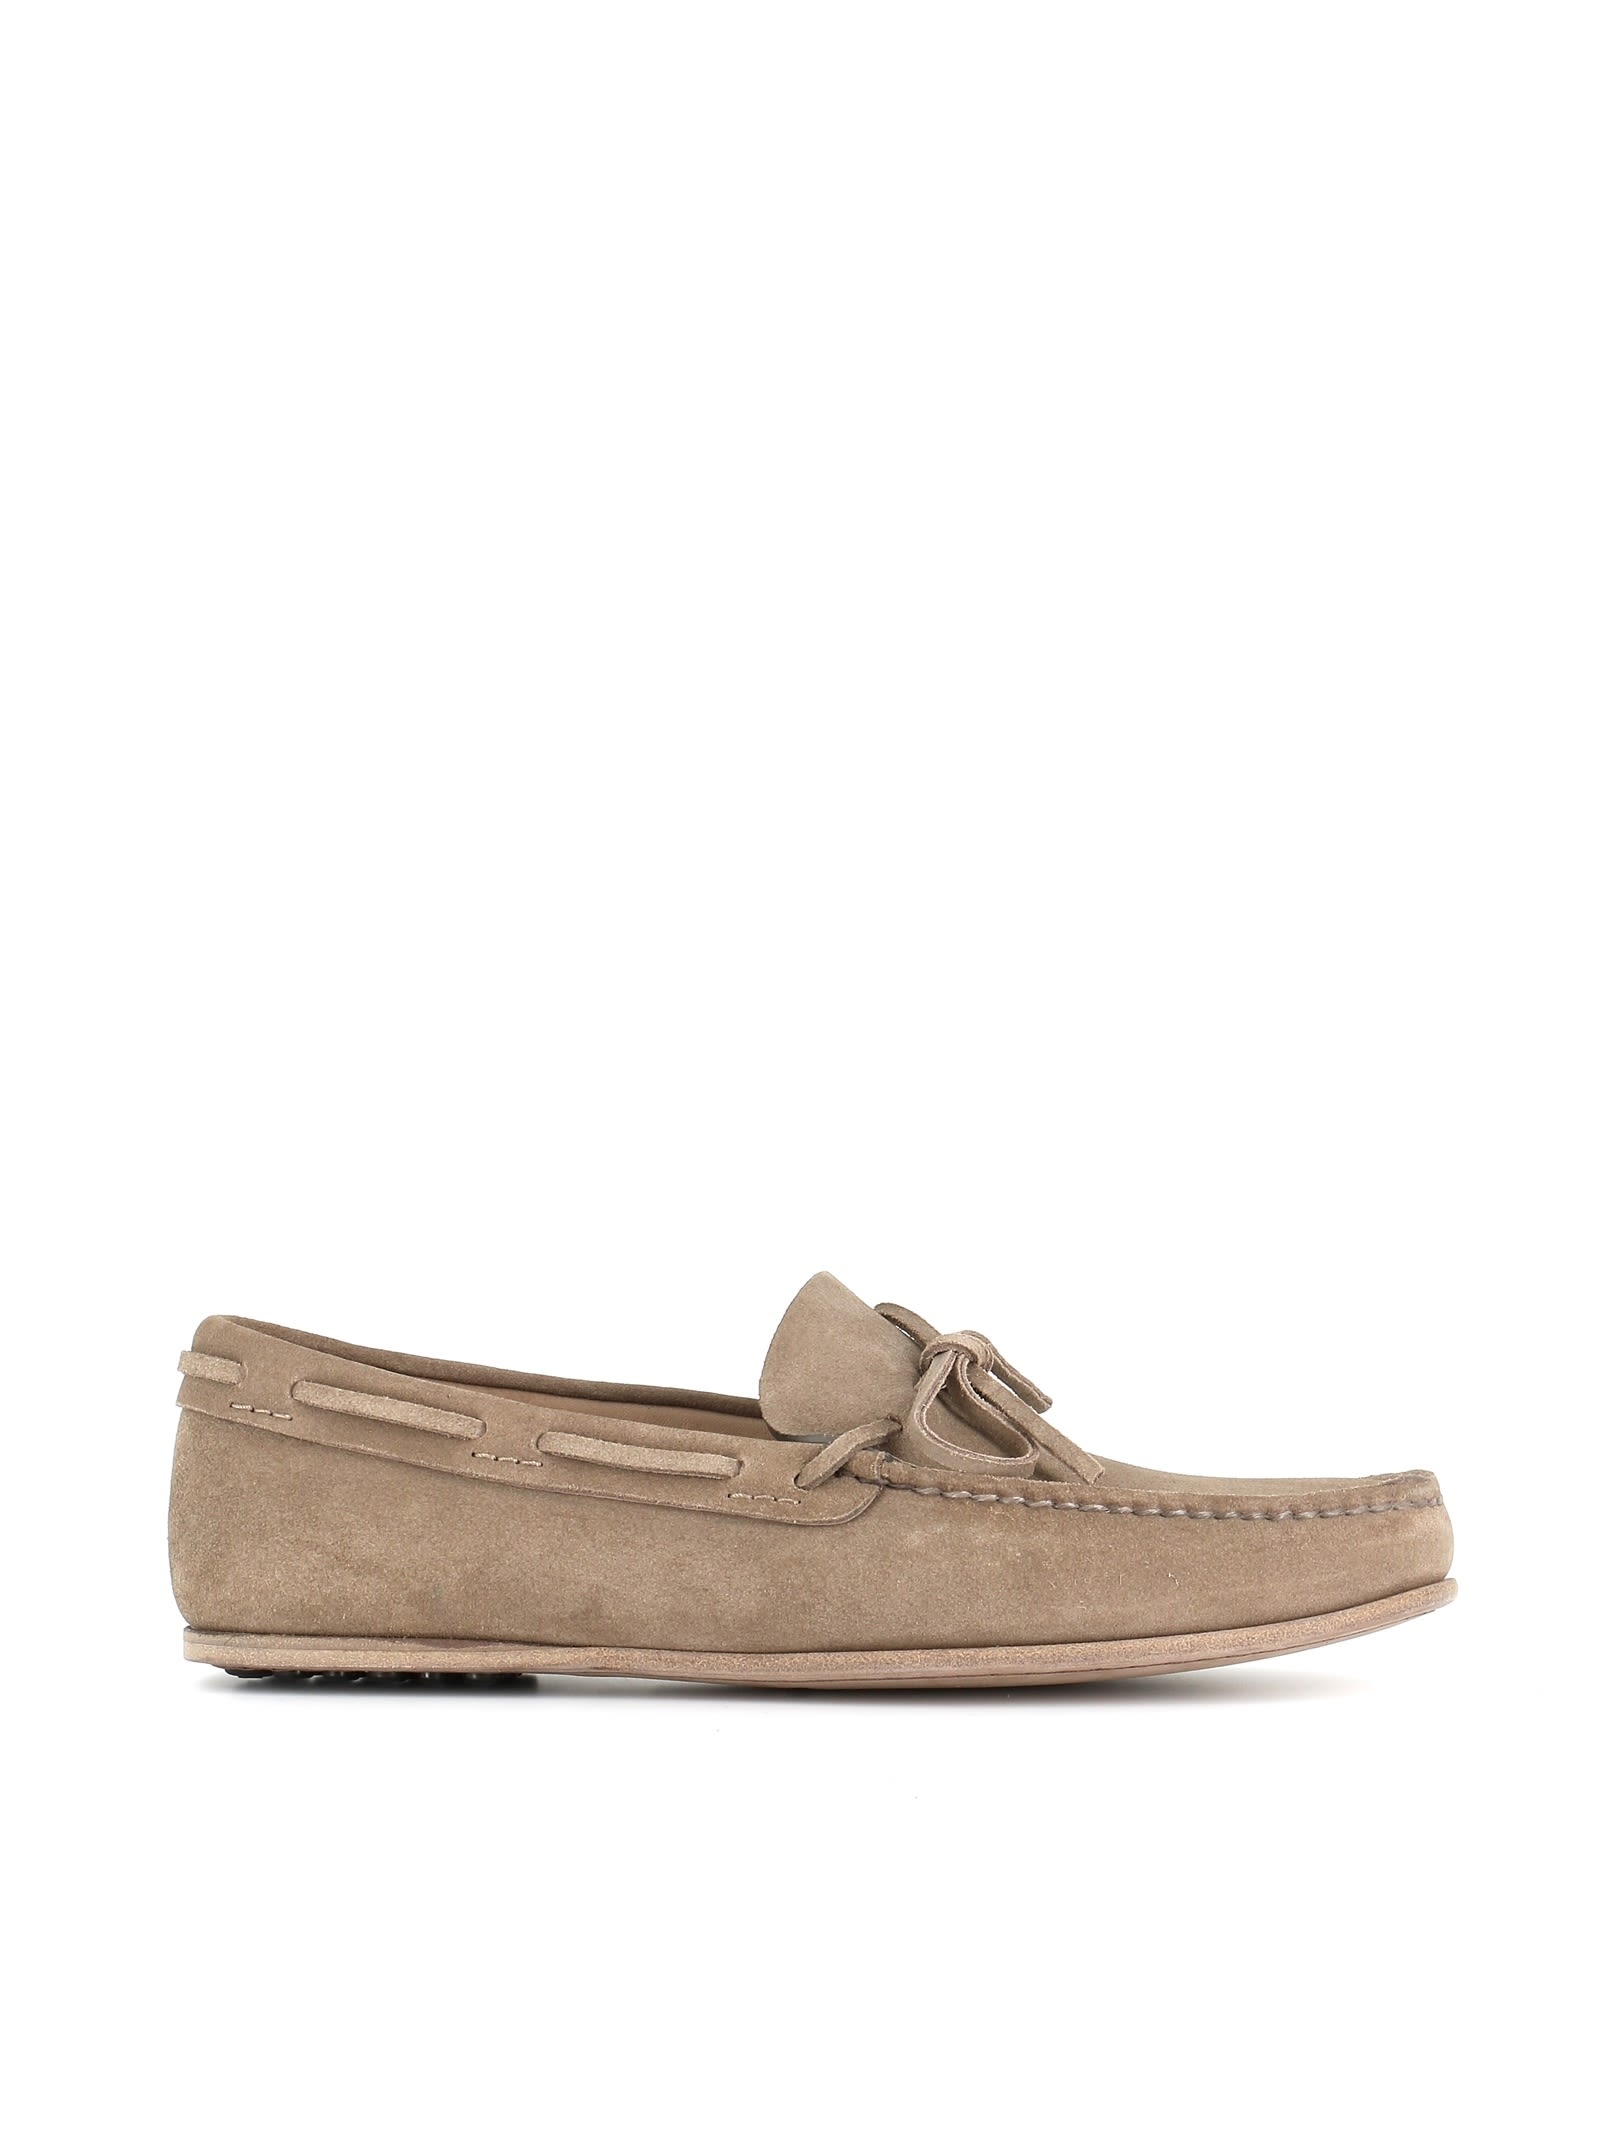 Car Shoe Driving Loafer